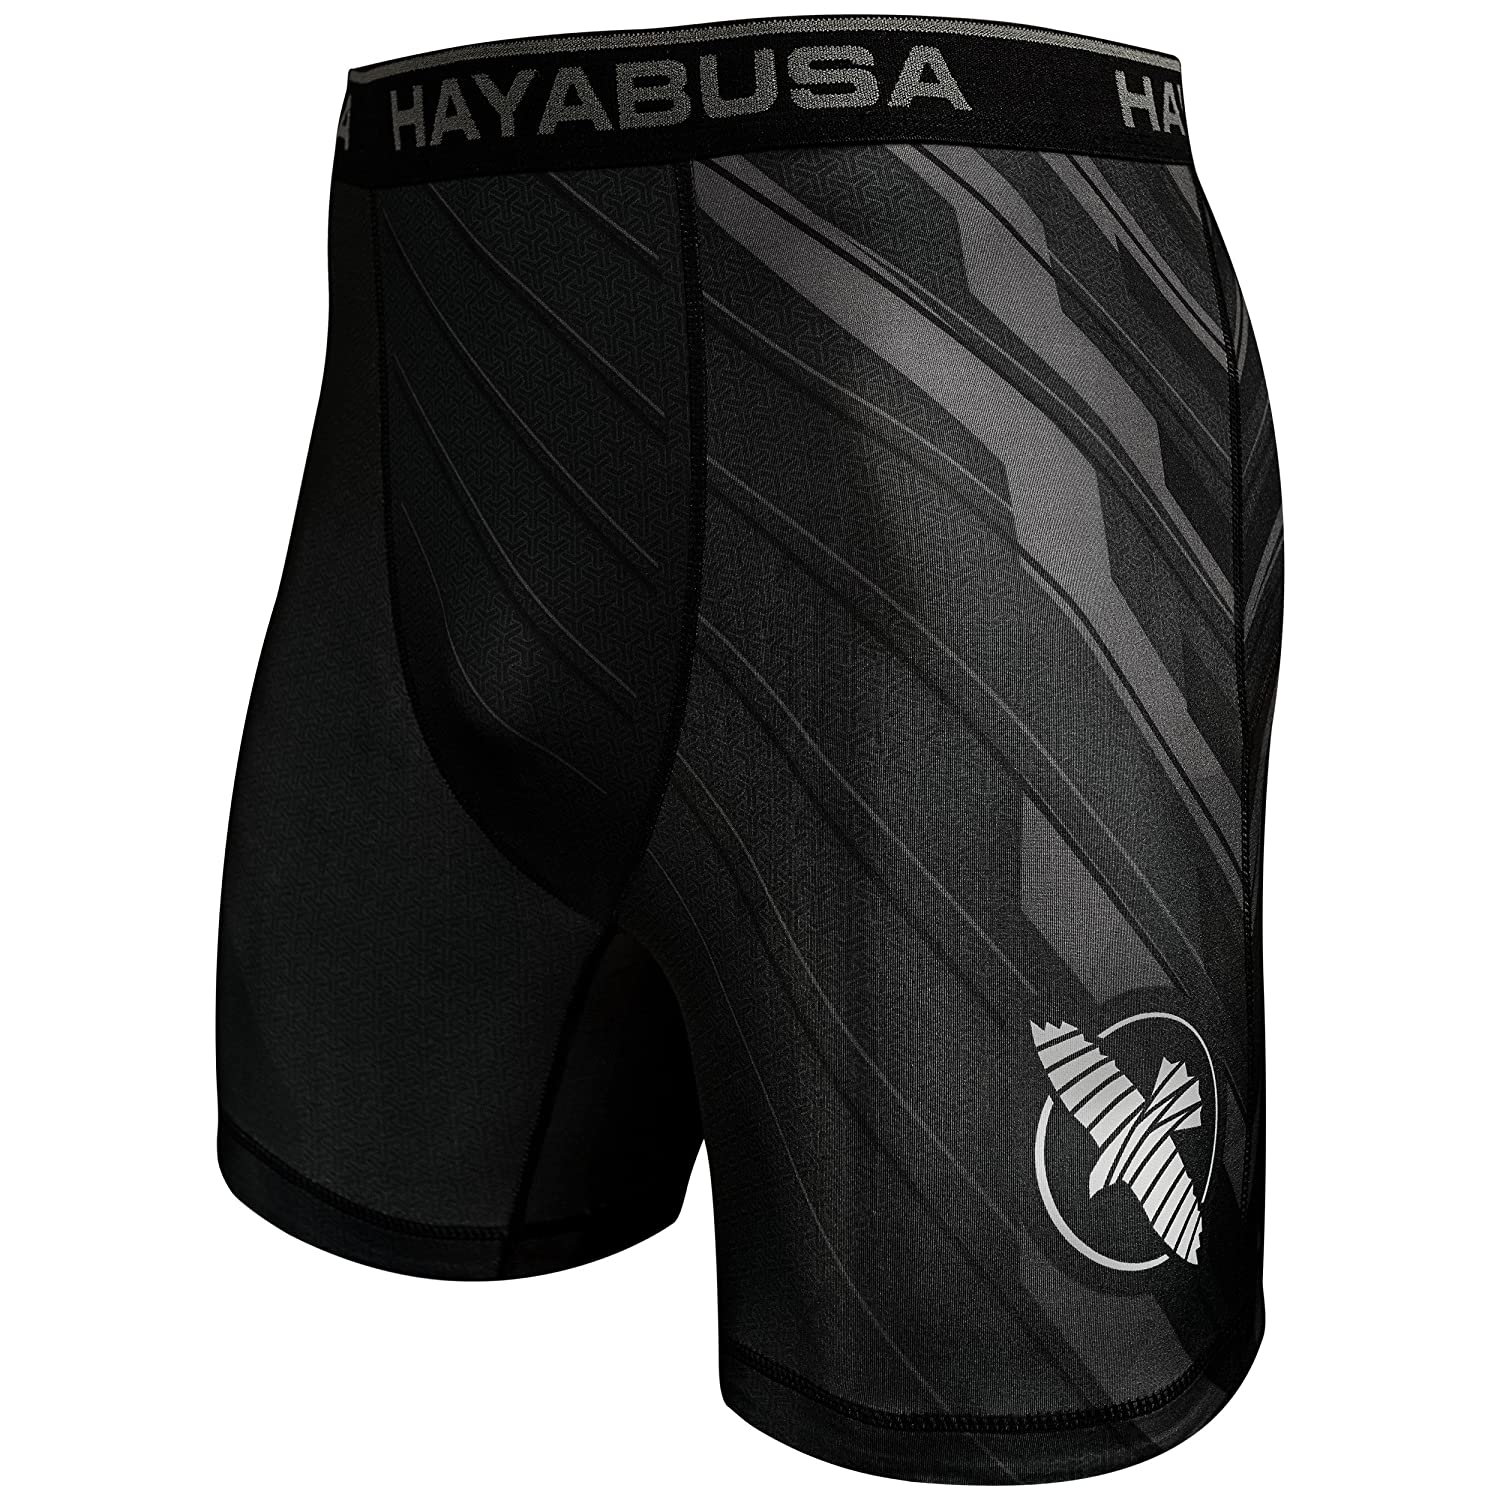 Hayabusa Metaru Charged Compression Shorts, Black/Grey